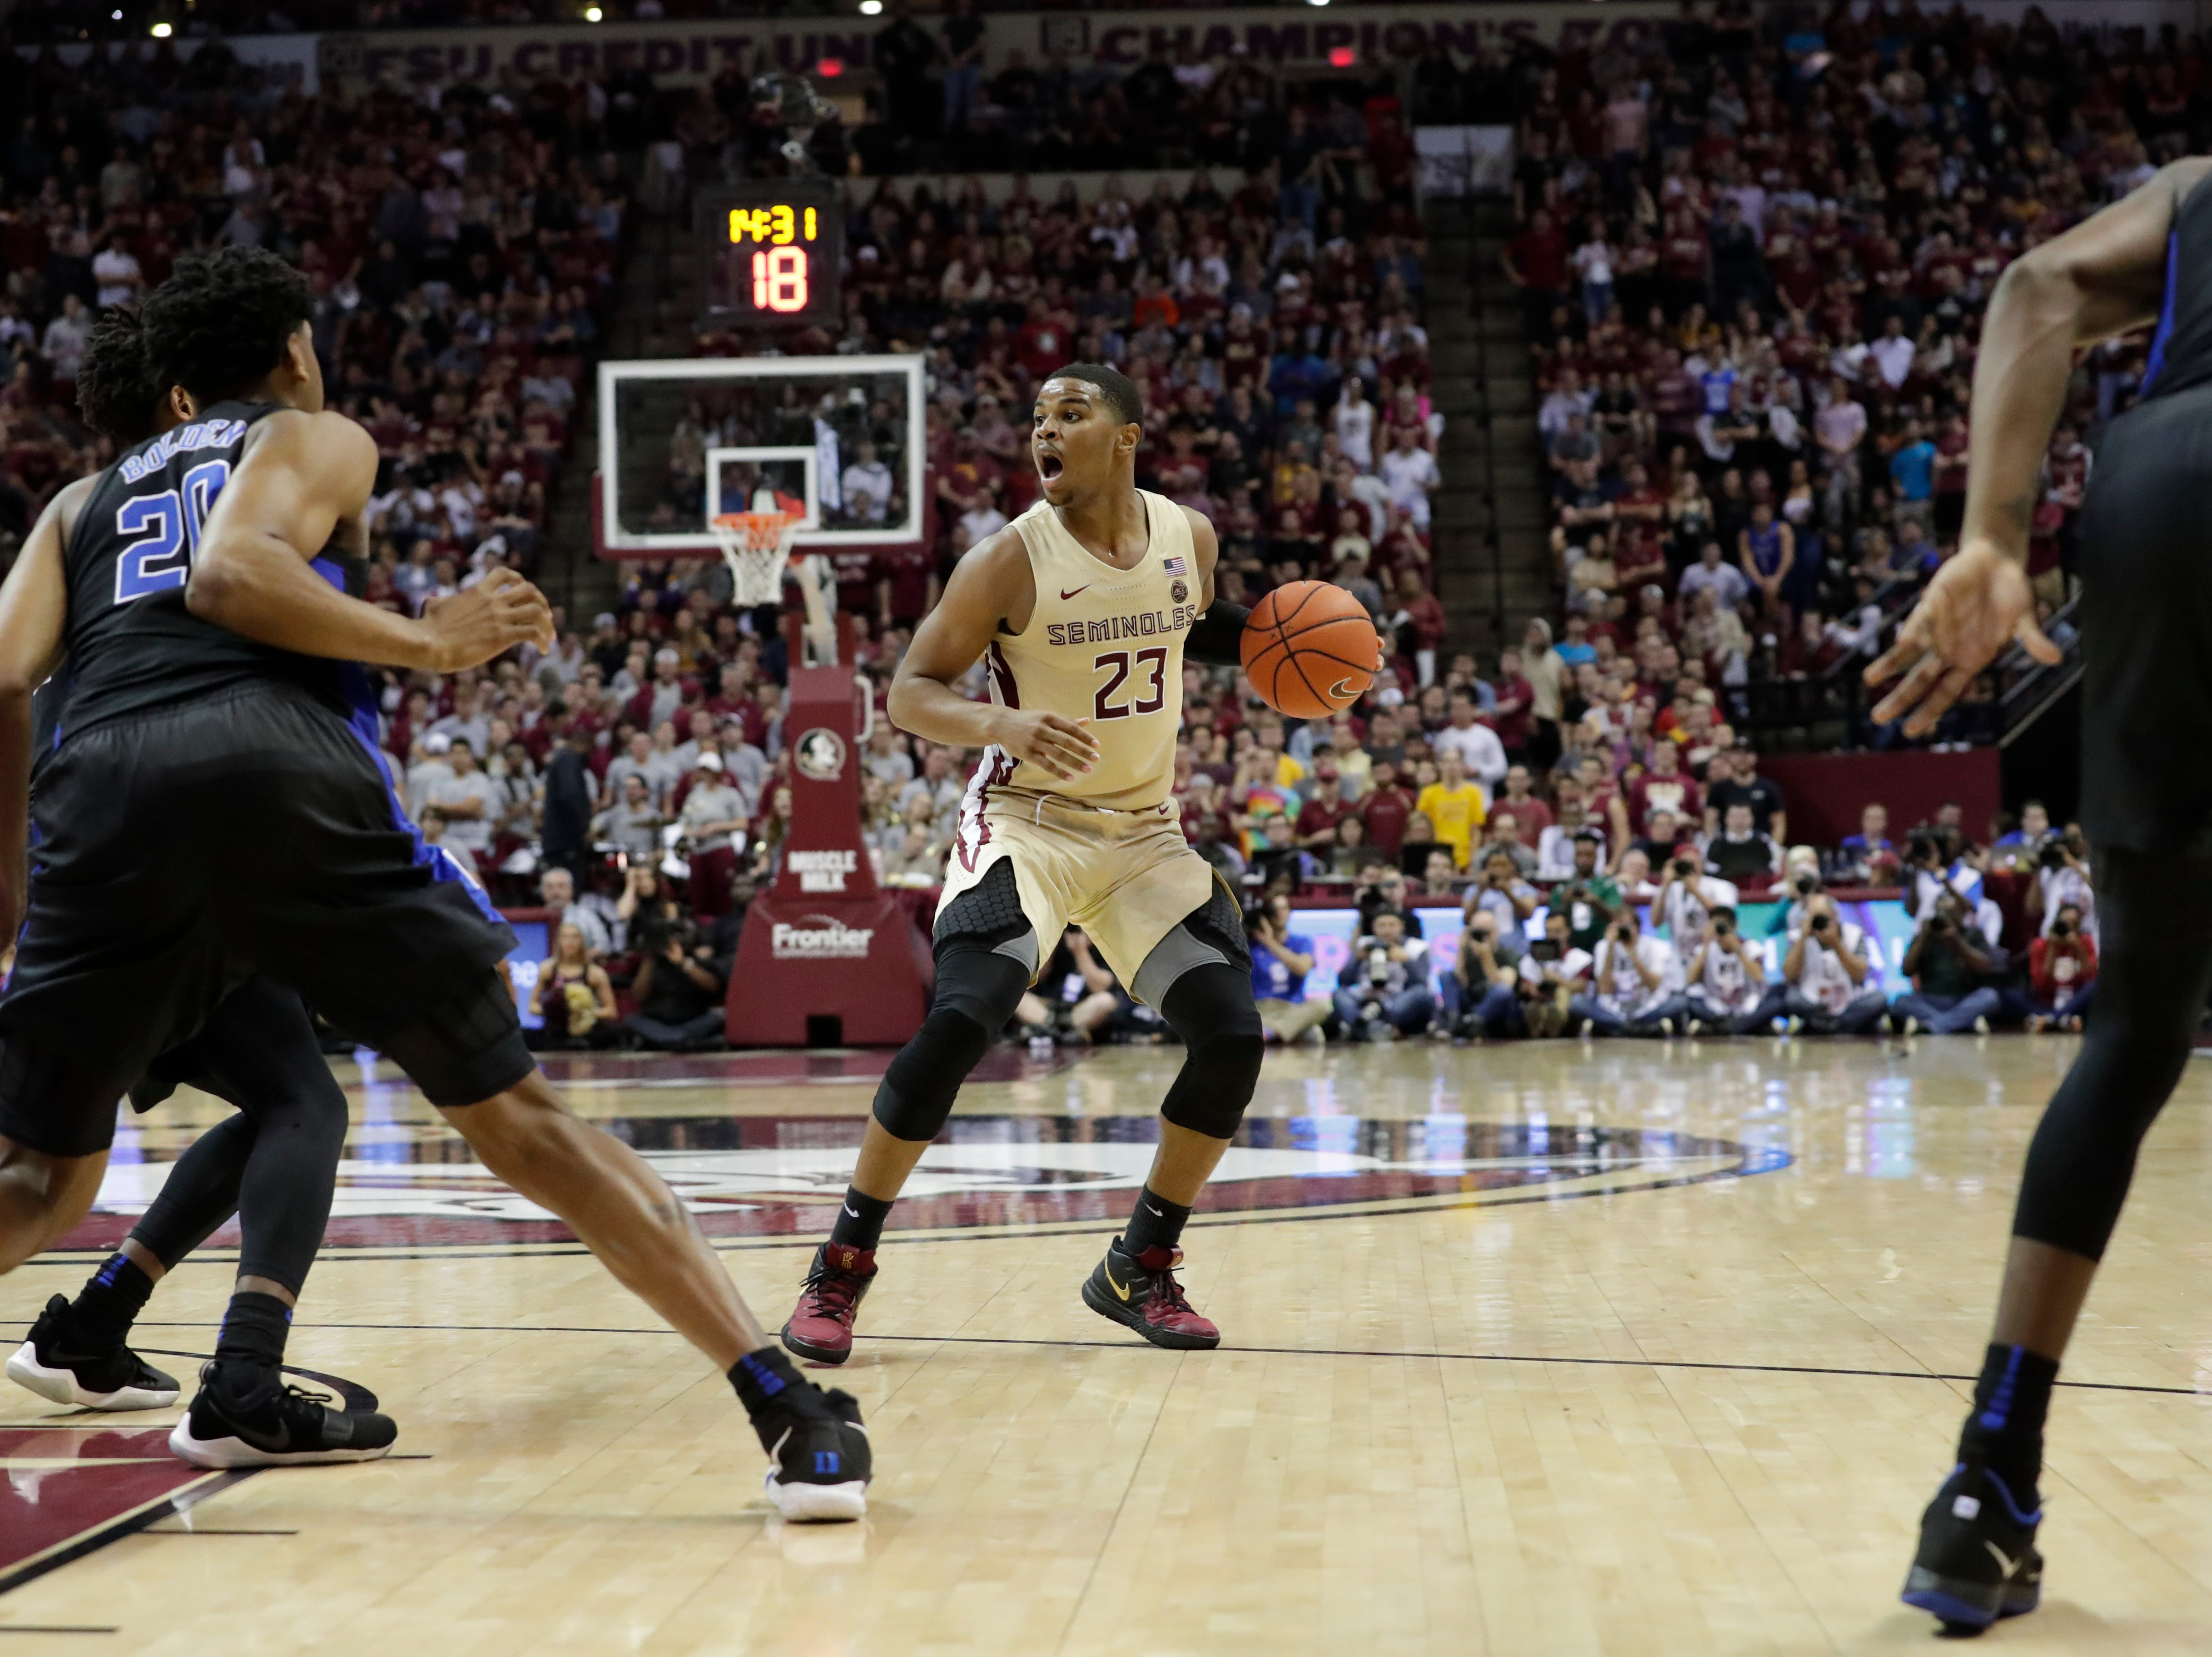 Florida State Seminoles guard M.J. Walker (23) yells to his teammates for assistance. Ranked 13 in the ACC, the Florida State Seminoles host the number 1 team, the Duke Blue Devils, at the Tucker Civic Center, Saturday, Jan. 12, 2019.